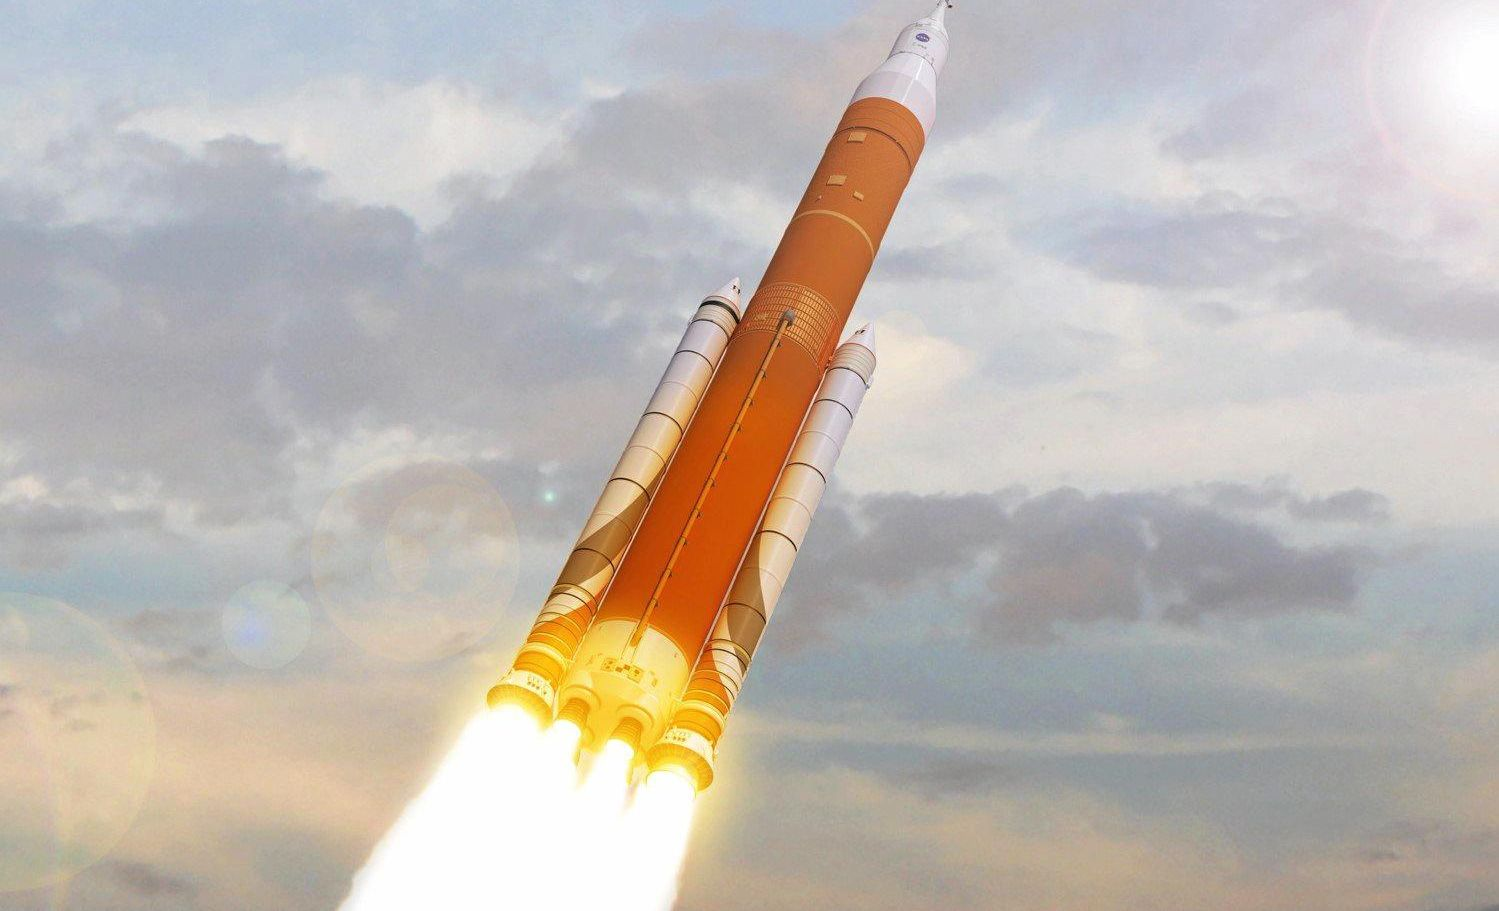 SPACE INDUSTRY: Has the Northern Territory's coup to become a space industry hub already been lost?